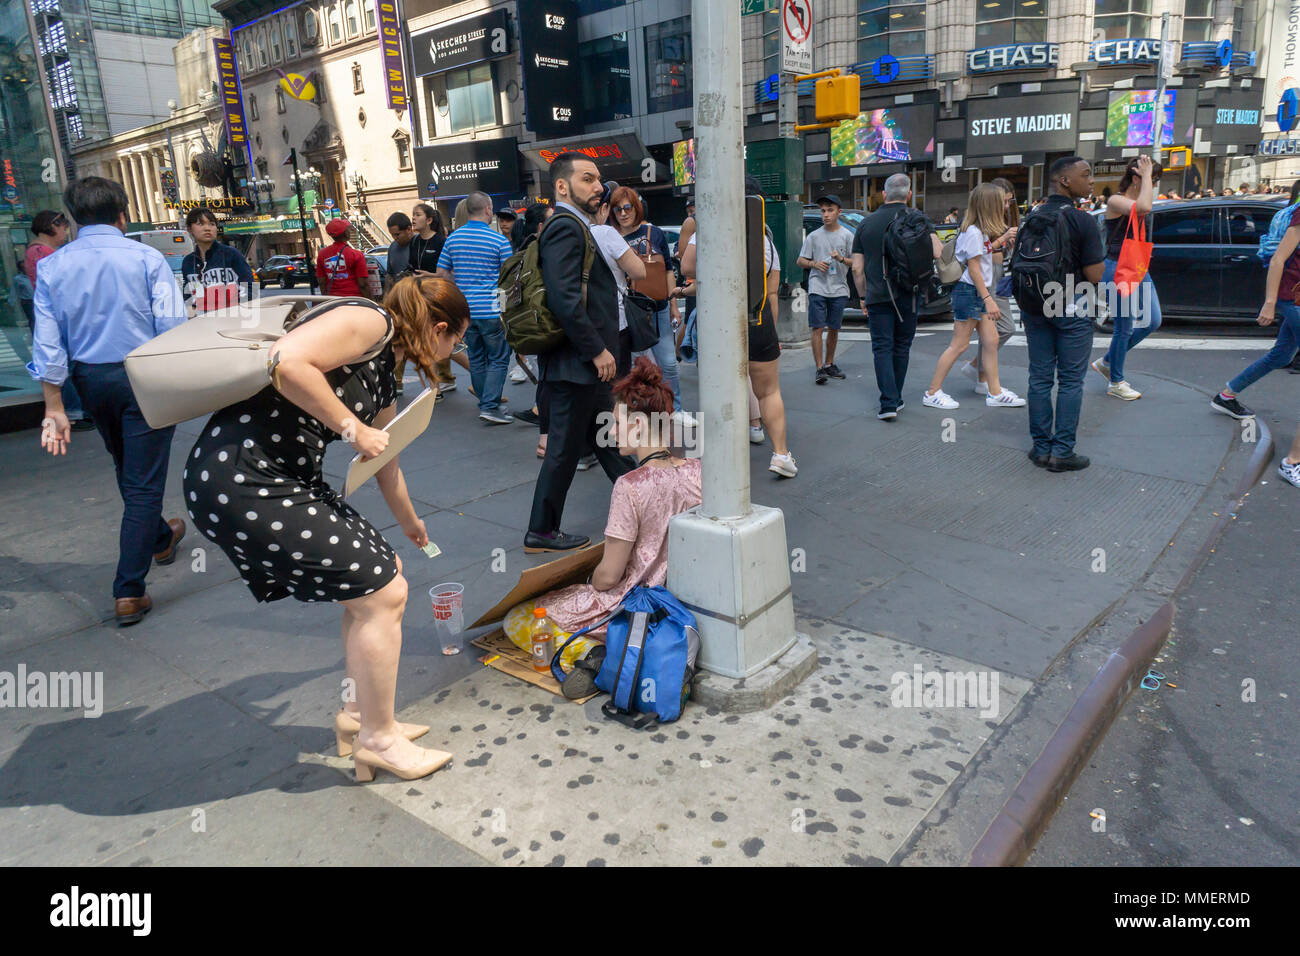 A woman gives money to a homeless woman begging in Midtown Manhattan in New York on Thursday, May 3, 2018. (© Richard B. Levine) - Stock Image